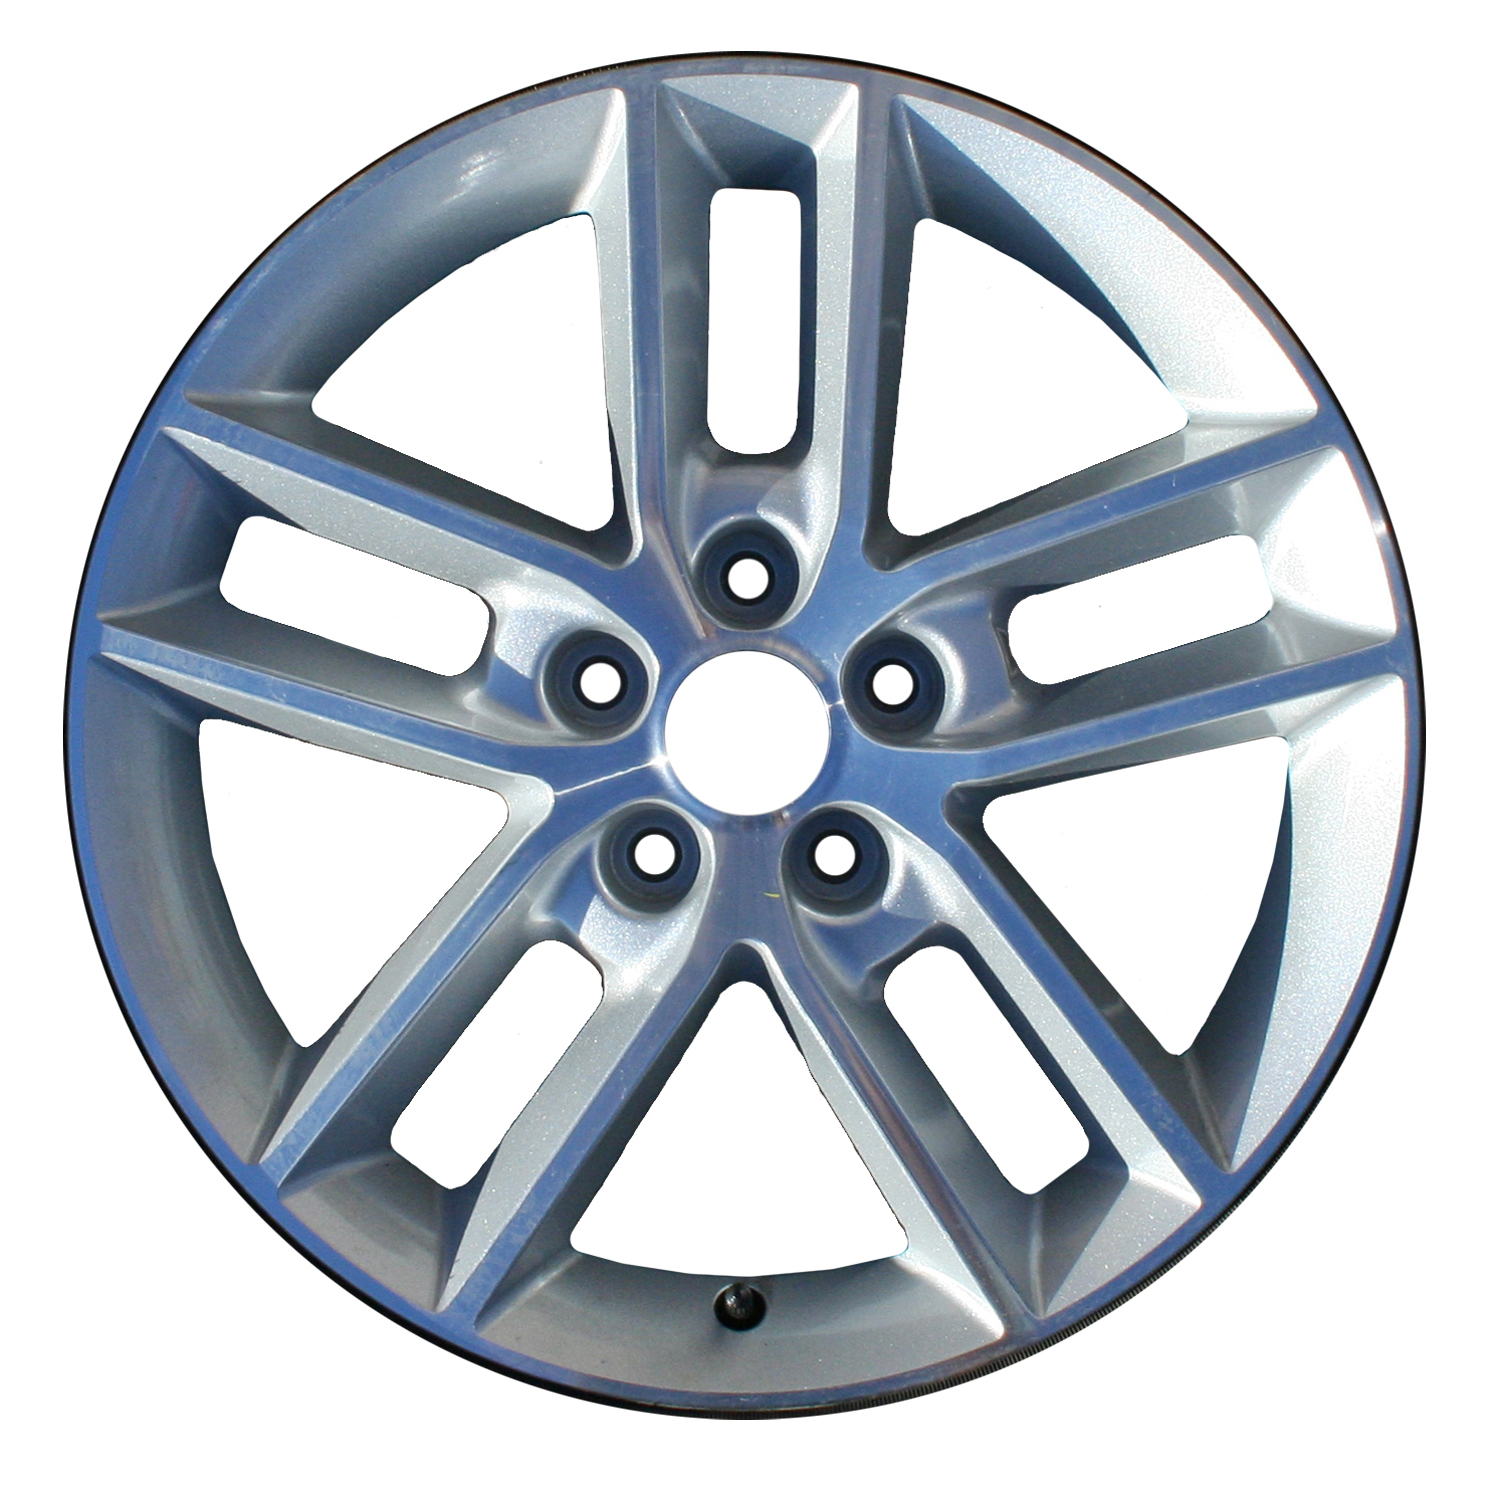 2008-2013 Chevrolet Impala  18x7 Alloy Wheel, Rim Sparkle Silver Painted with Machined Face - 5333